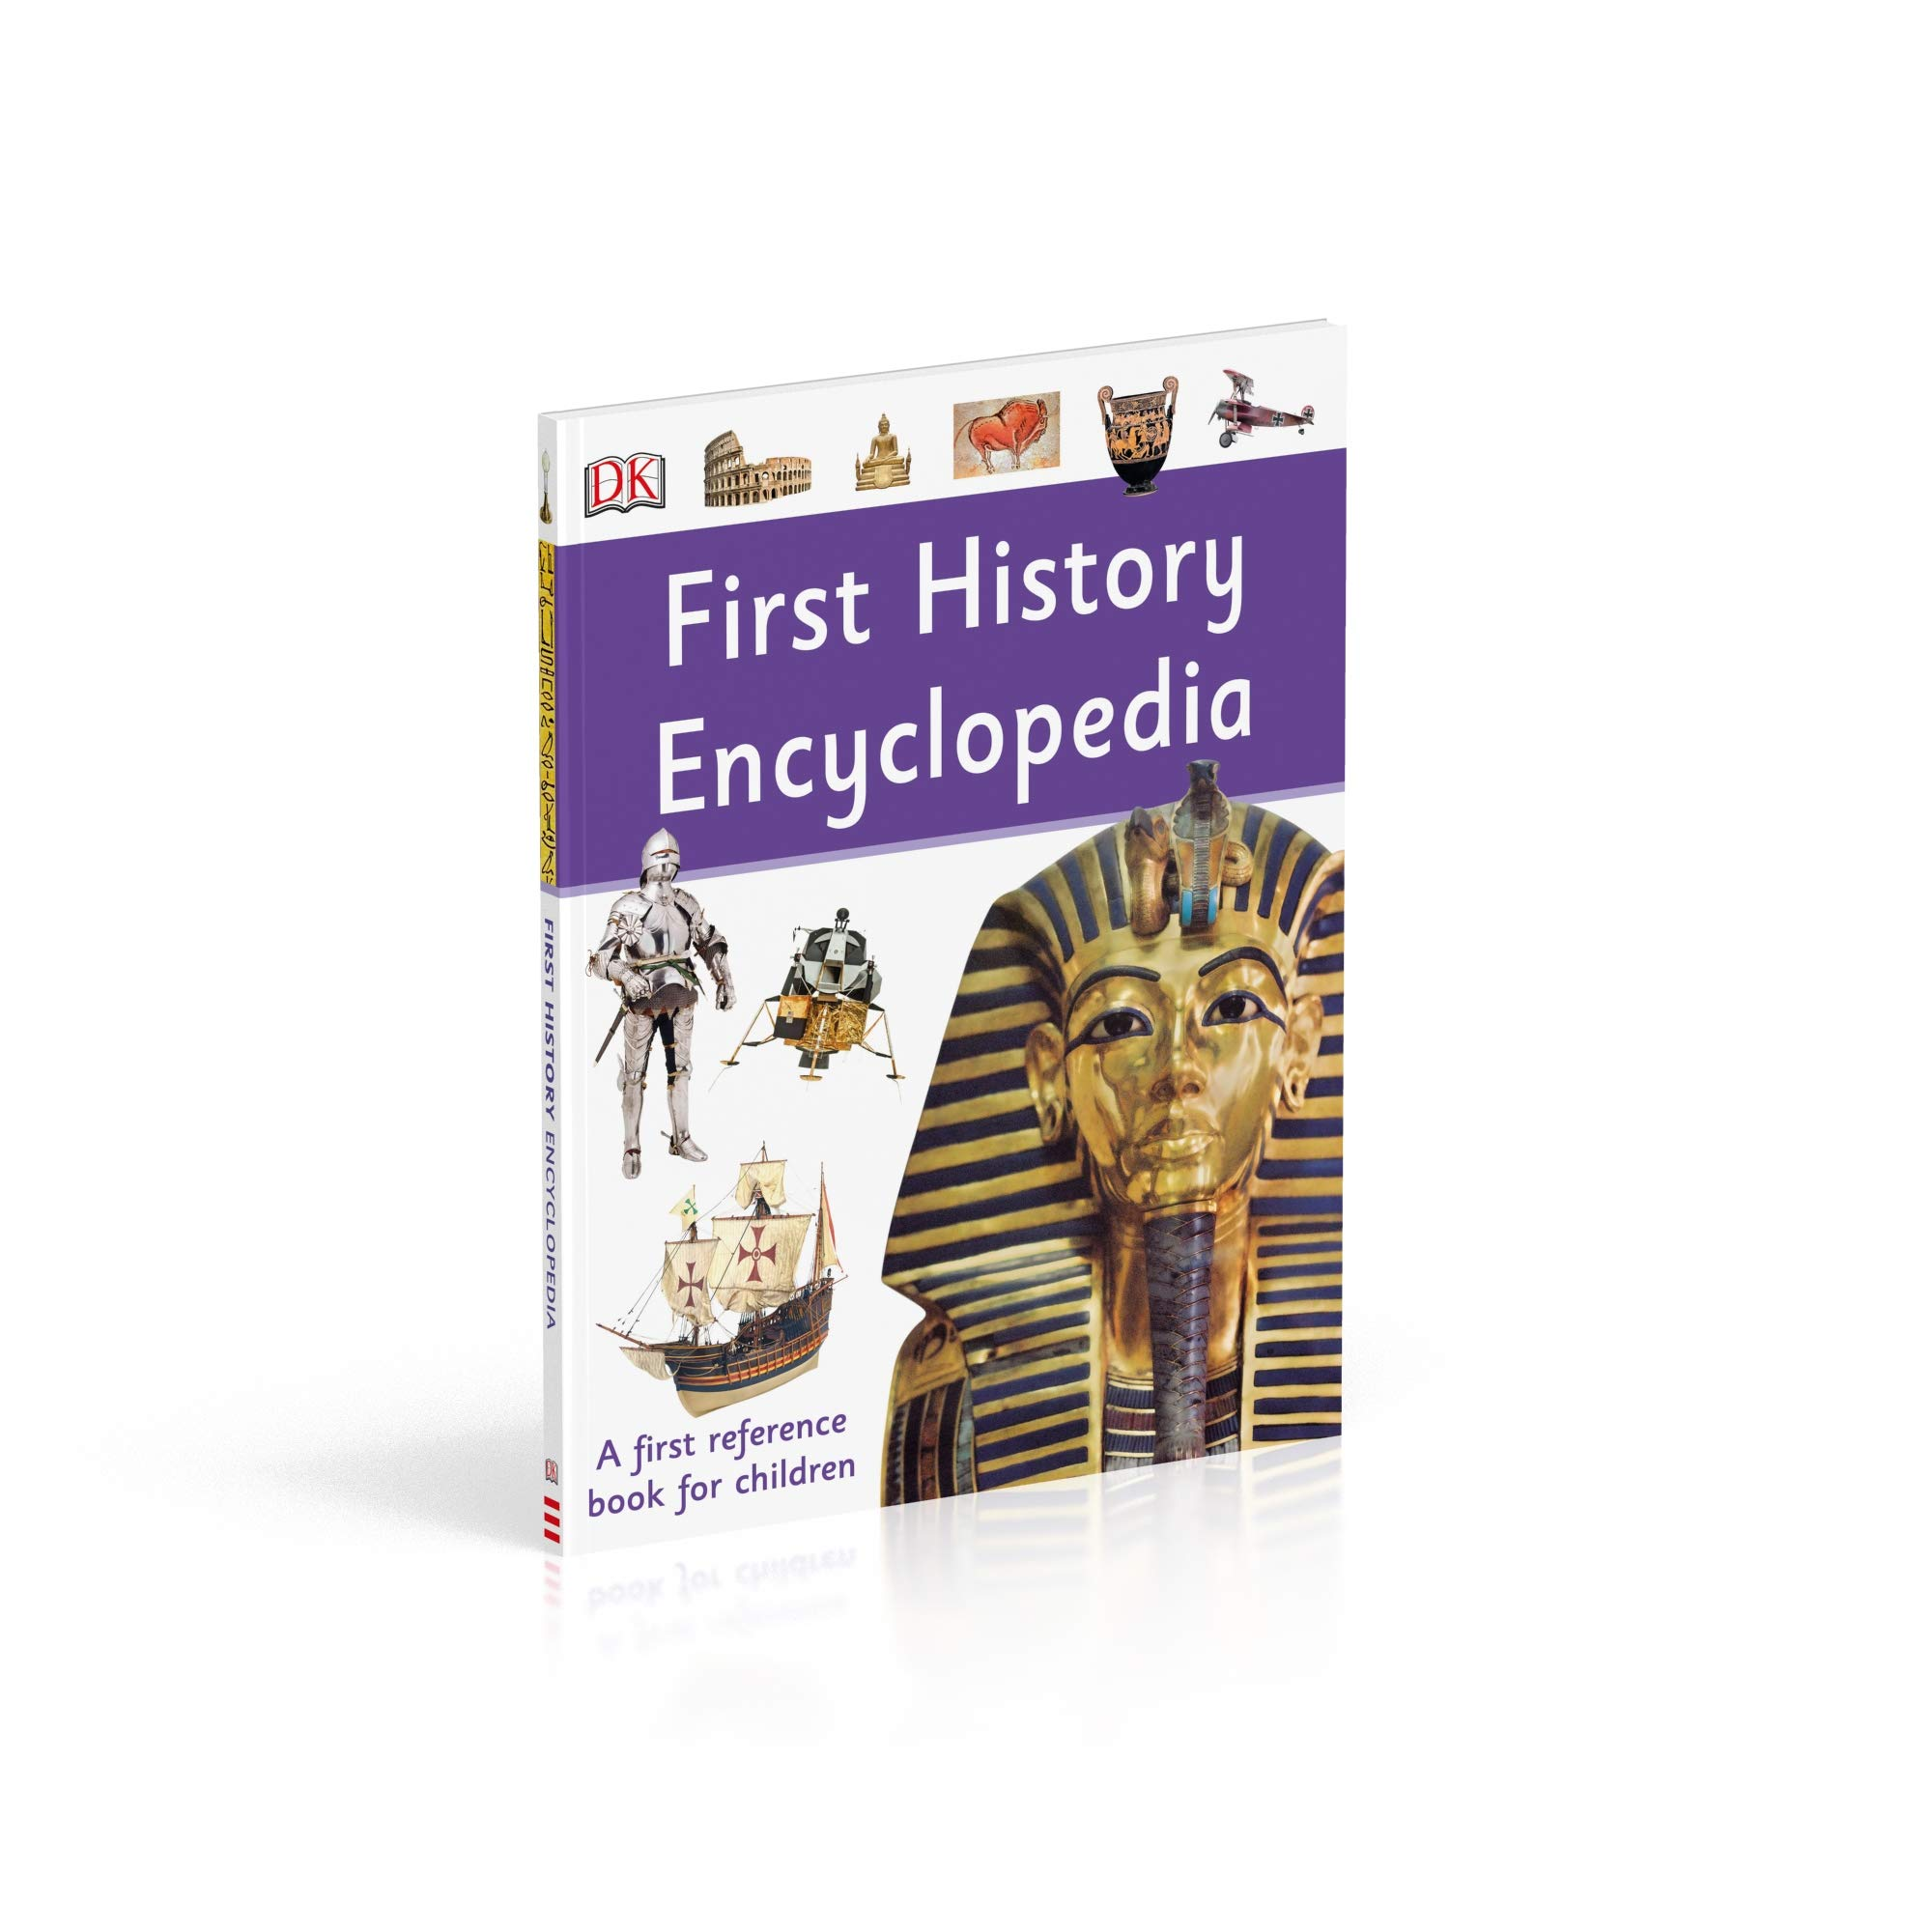 3d3da8259c2 First History Encyclopedia  A First Reference Book for Children   Amazon.co.uk  DK  9780241366943  Books